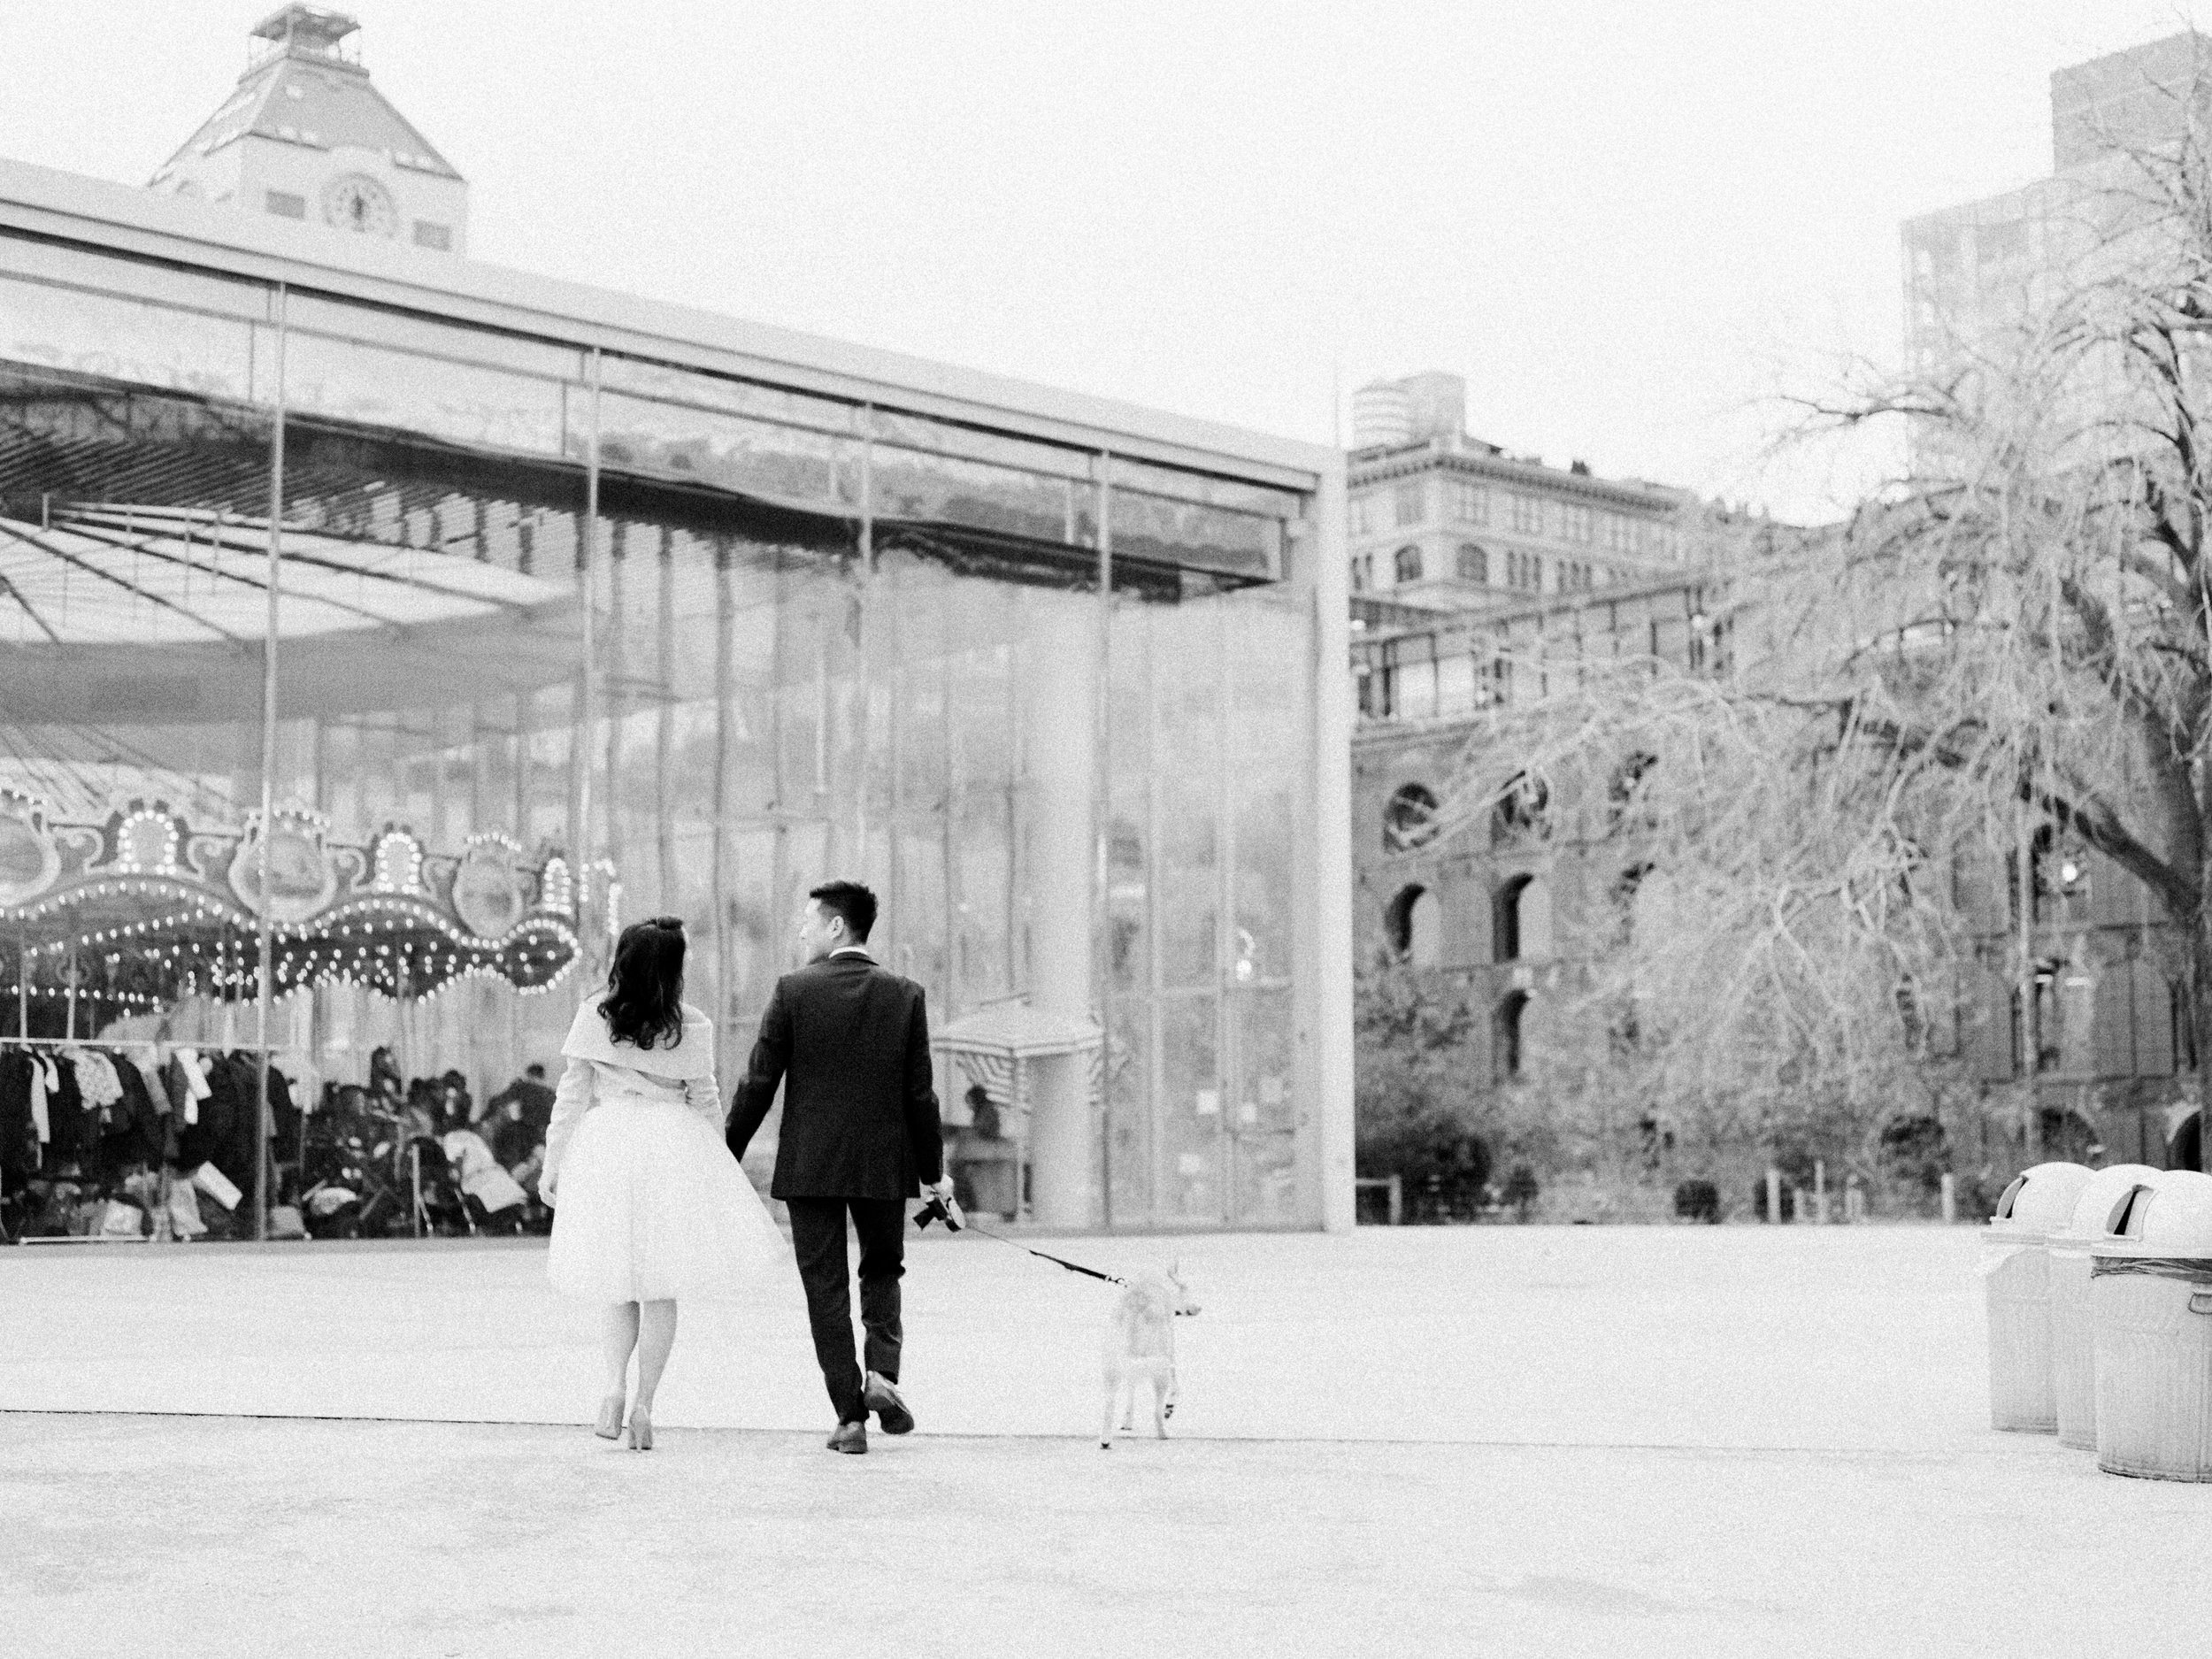 brooklyn-dumbo-new-york-engagement-photos-pictures-24.jpg